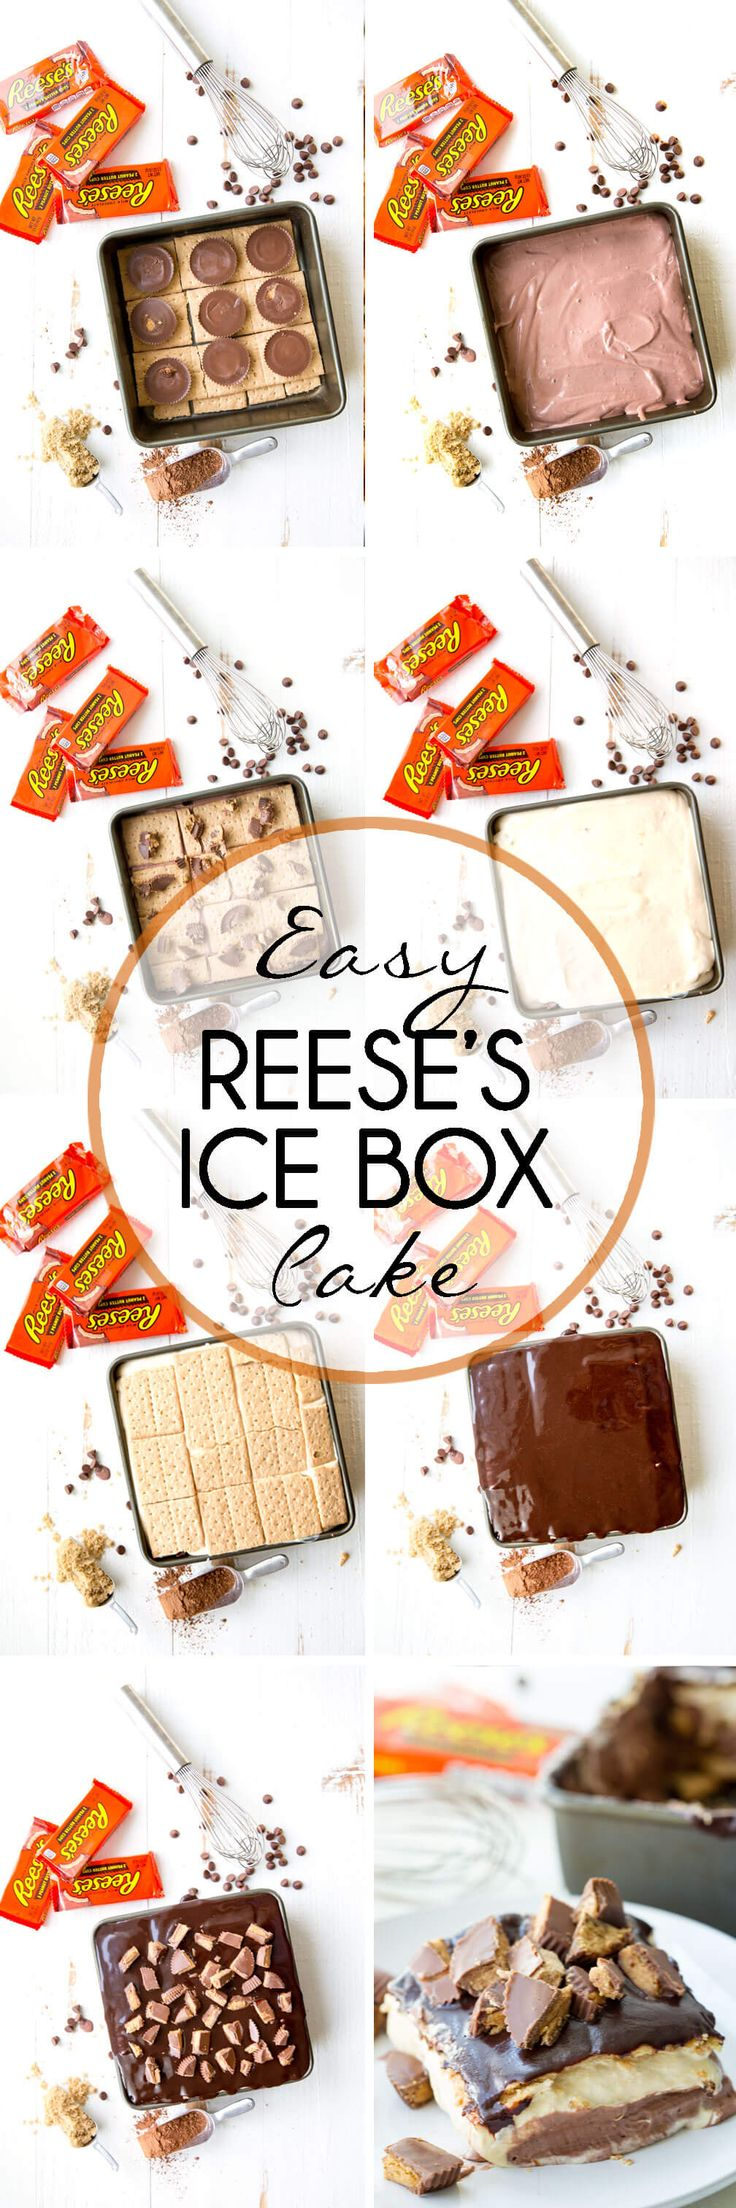 Reese's Ice Box Cake, layers of sweets covered in hot fudge sauce and peanut butter goodness #ad #beyondthejar